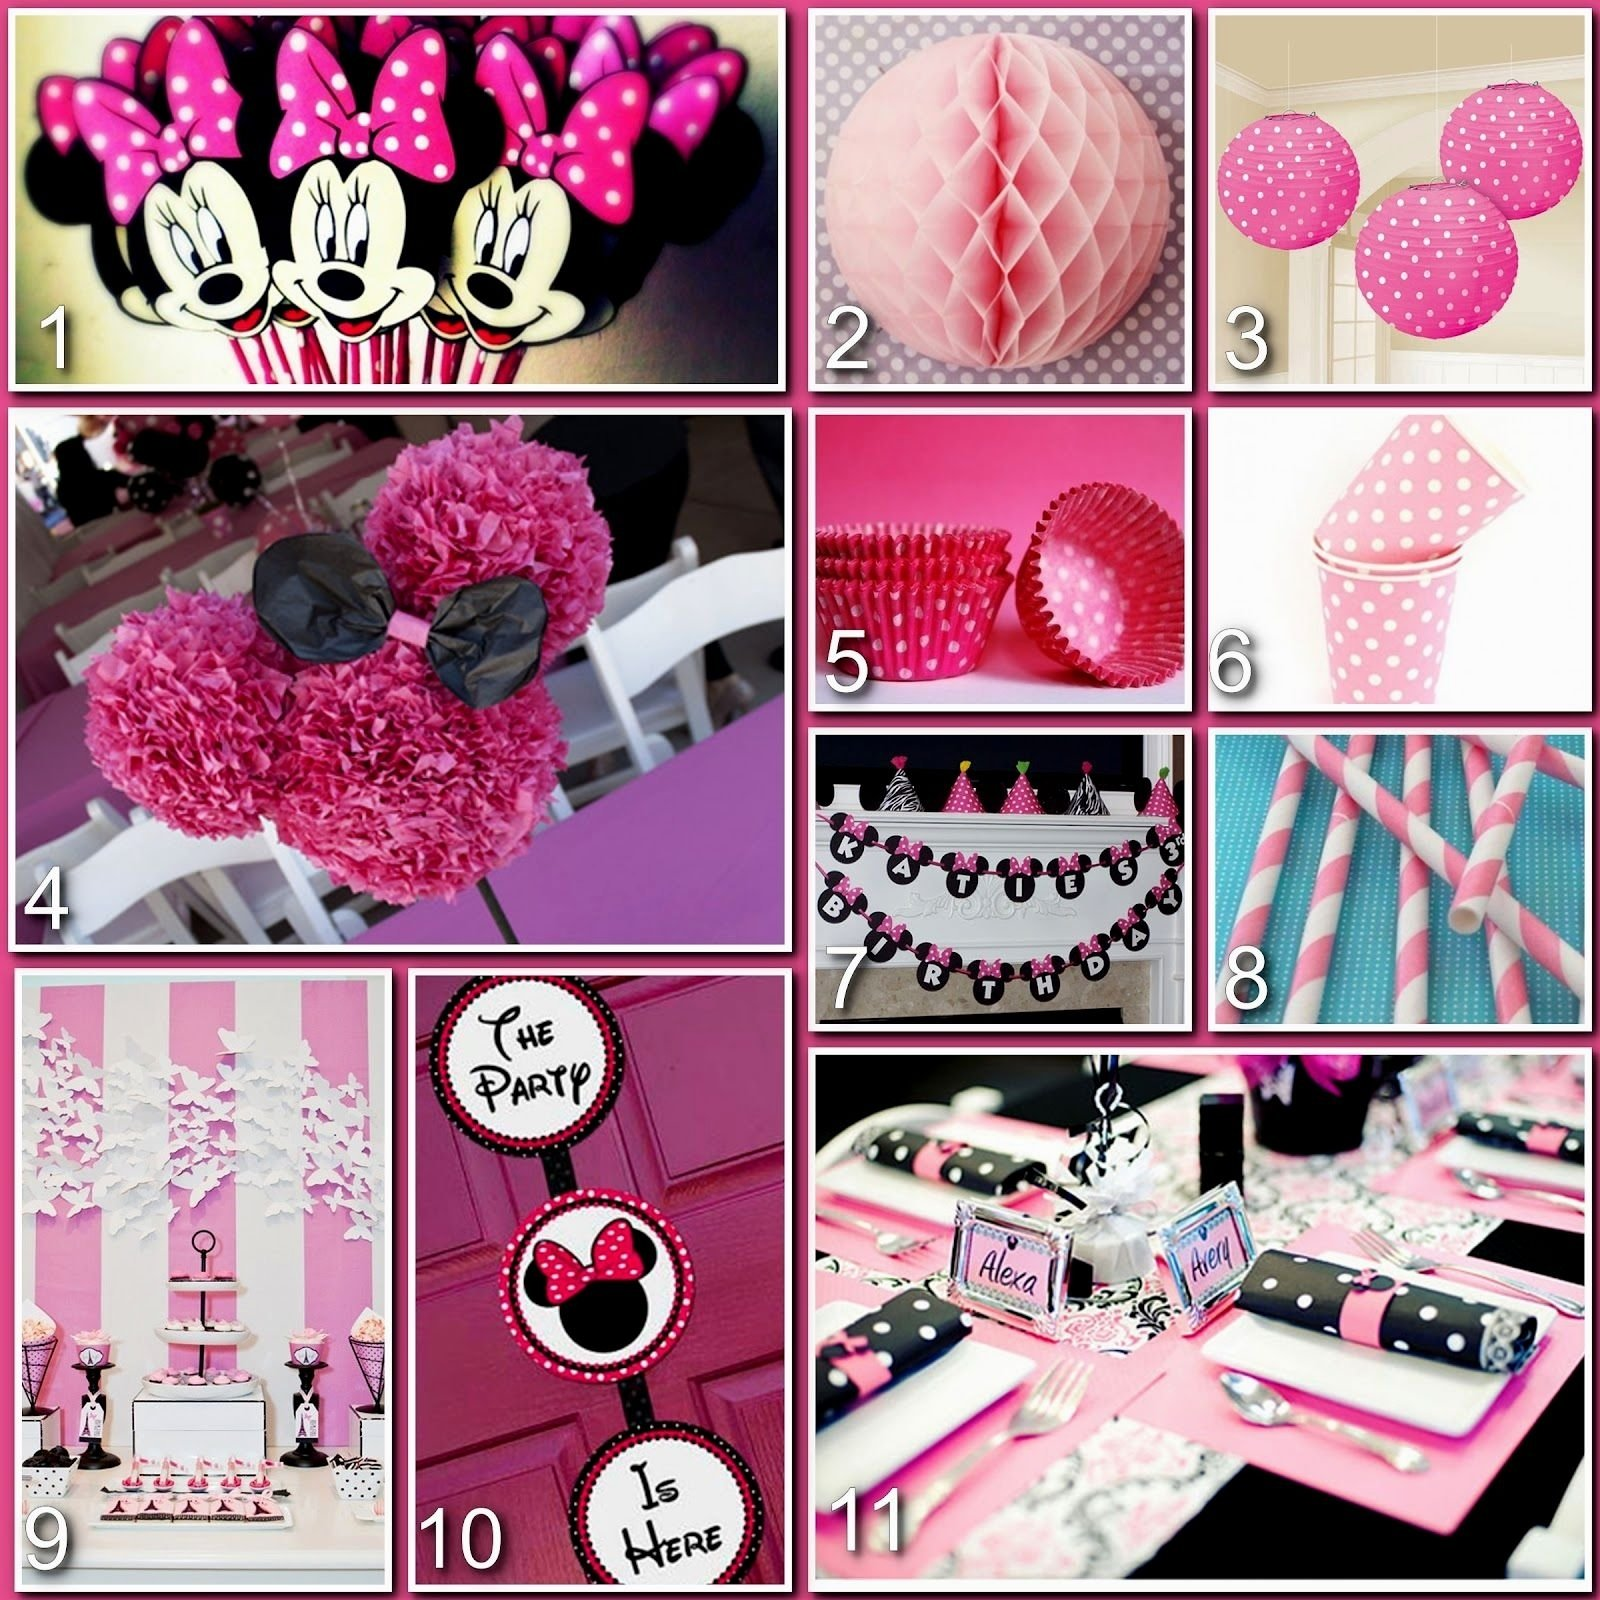 10 Fashionable Minnie Mouse First Birthday Ideas first birthday ideas minnie mouse decorating of party 2021